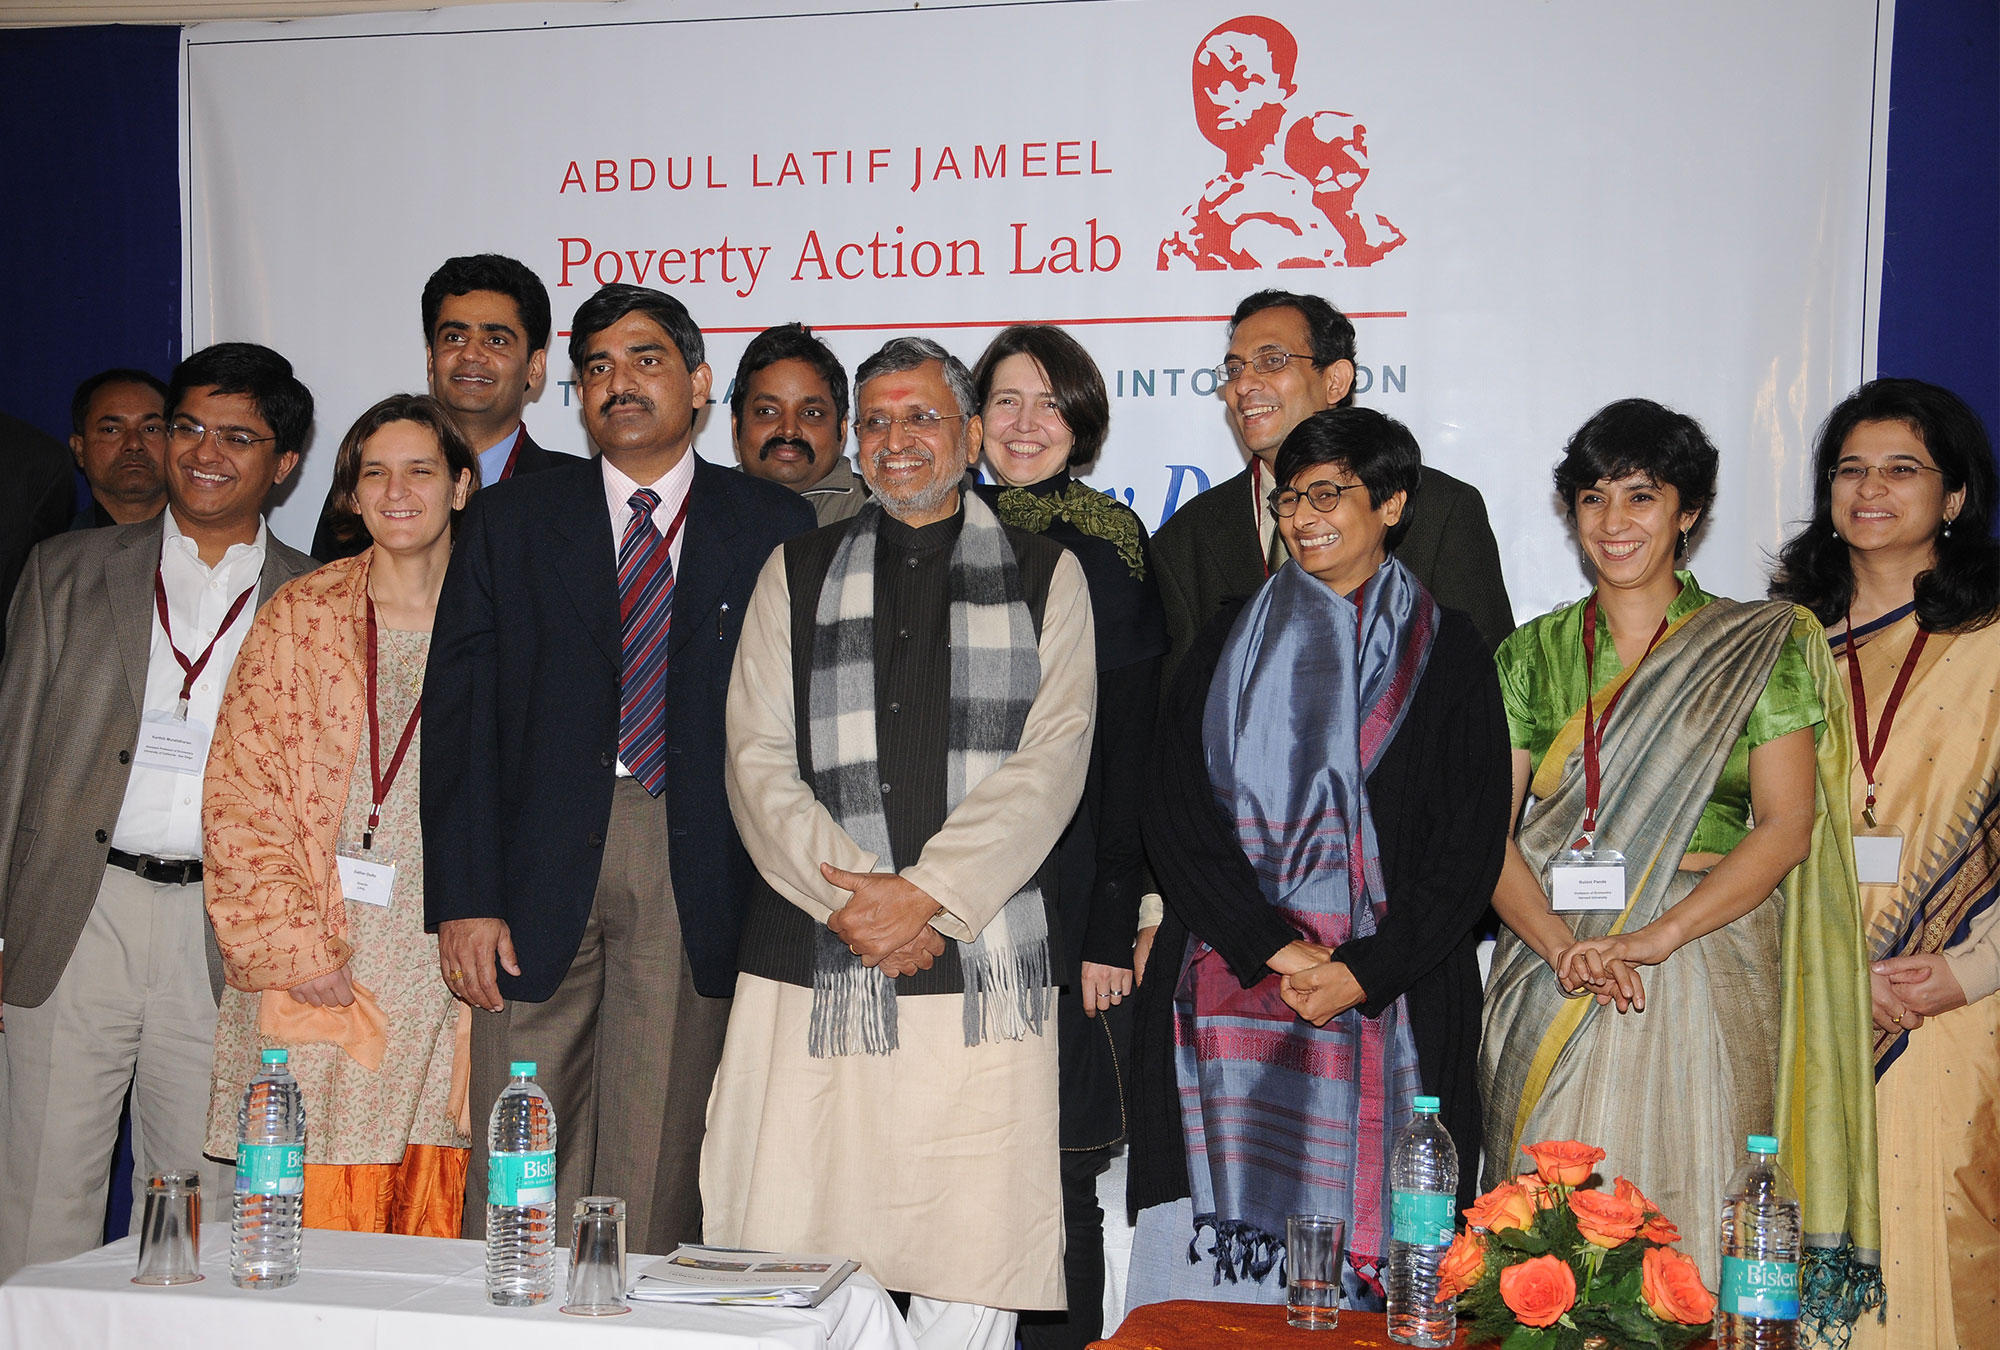 Group of J-PAL affiliates and partners stand in front of J-PAL logo banner